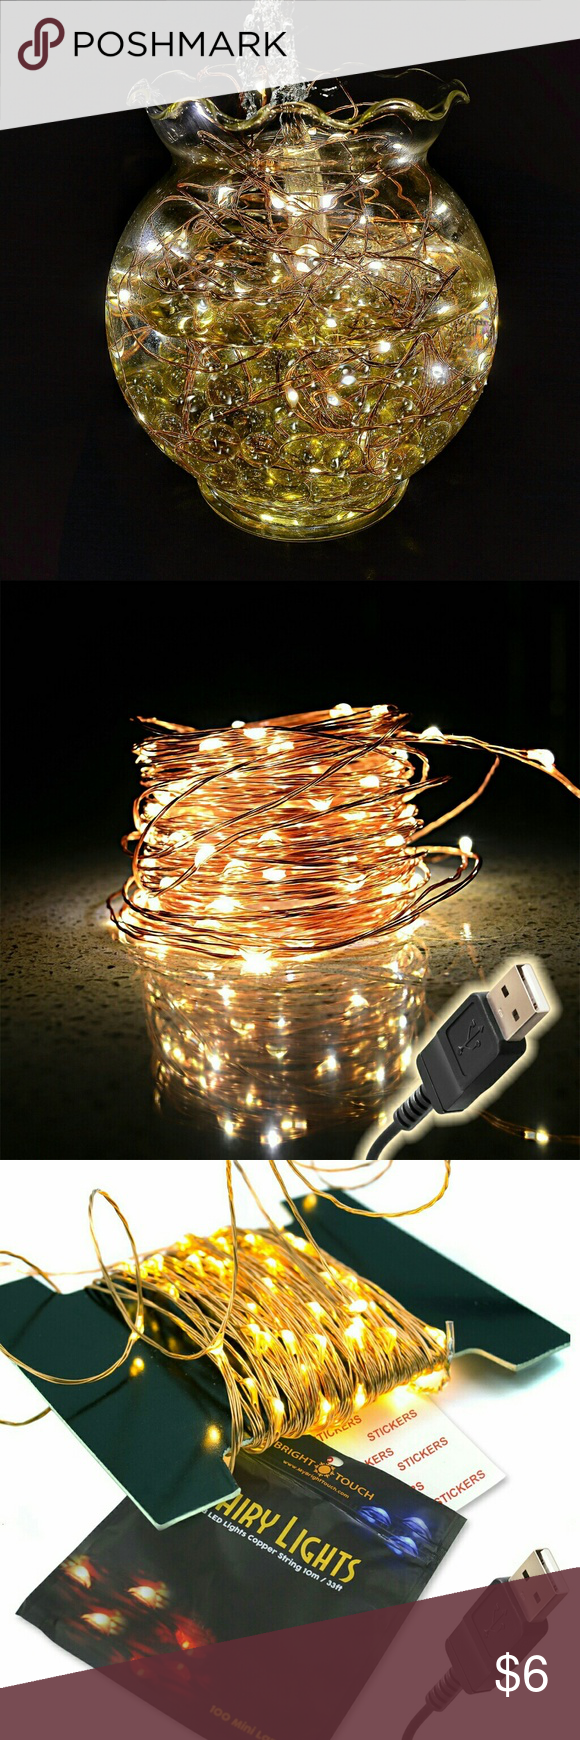 Fairy Lights Warm White USB Powered Beautiful NO MORE BATTERIES OR HOPES FOR SUN! With simple USB connector, plug it anywhere: wall, computer, power bank, etc. Decorate bedroom, wedding, Christmas tree  STURDY COPPER WIRE WILL NEVER BREAK OR SHORT. The power adapter cord is 90 inches before the start of the 33 foot light strand wire.  SAFE FOR CHILDREN AND FURRY FRIENDS TO PLAY AND TOUCH - lights never get hot. Use these just about anywhere, from Christmas trees to window sills, and anywhere…